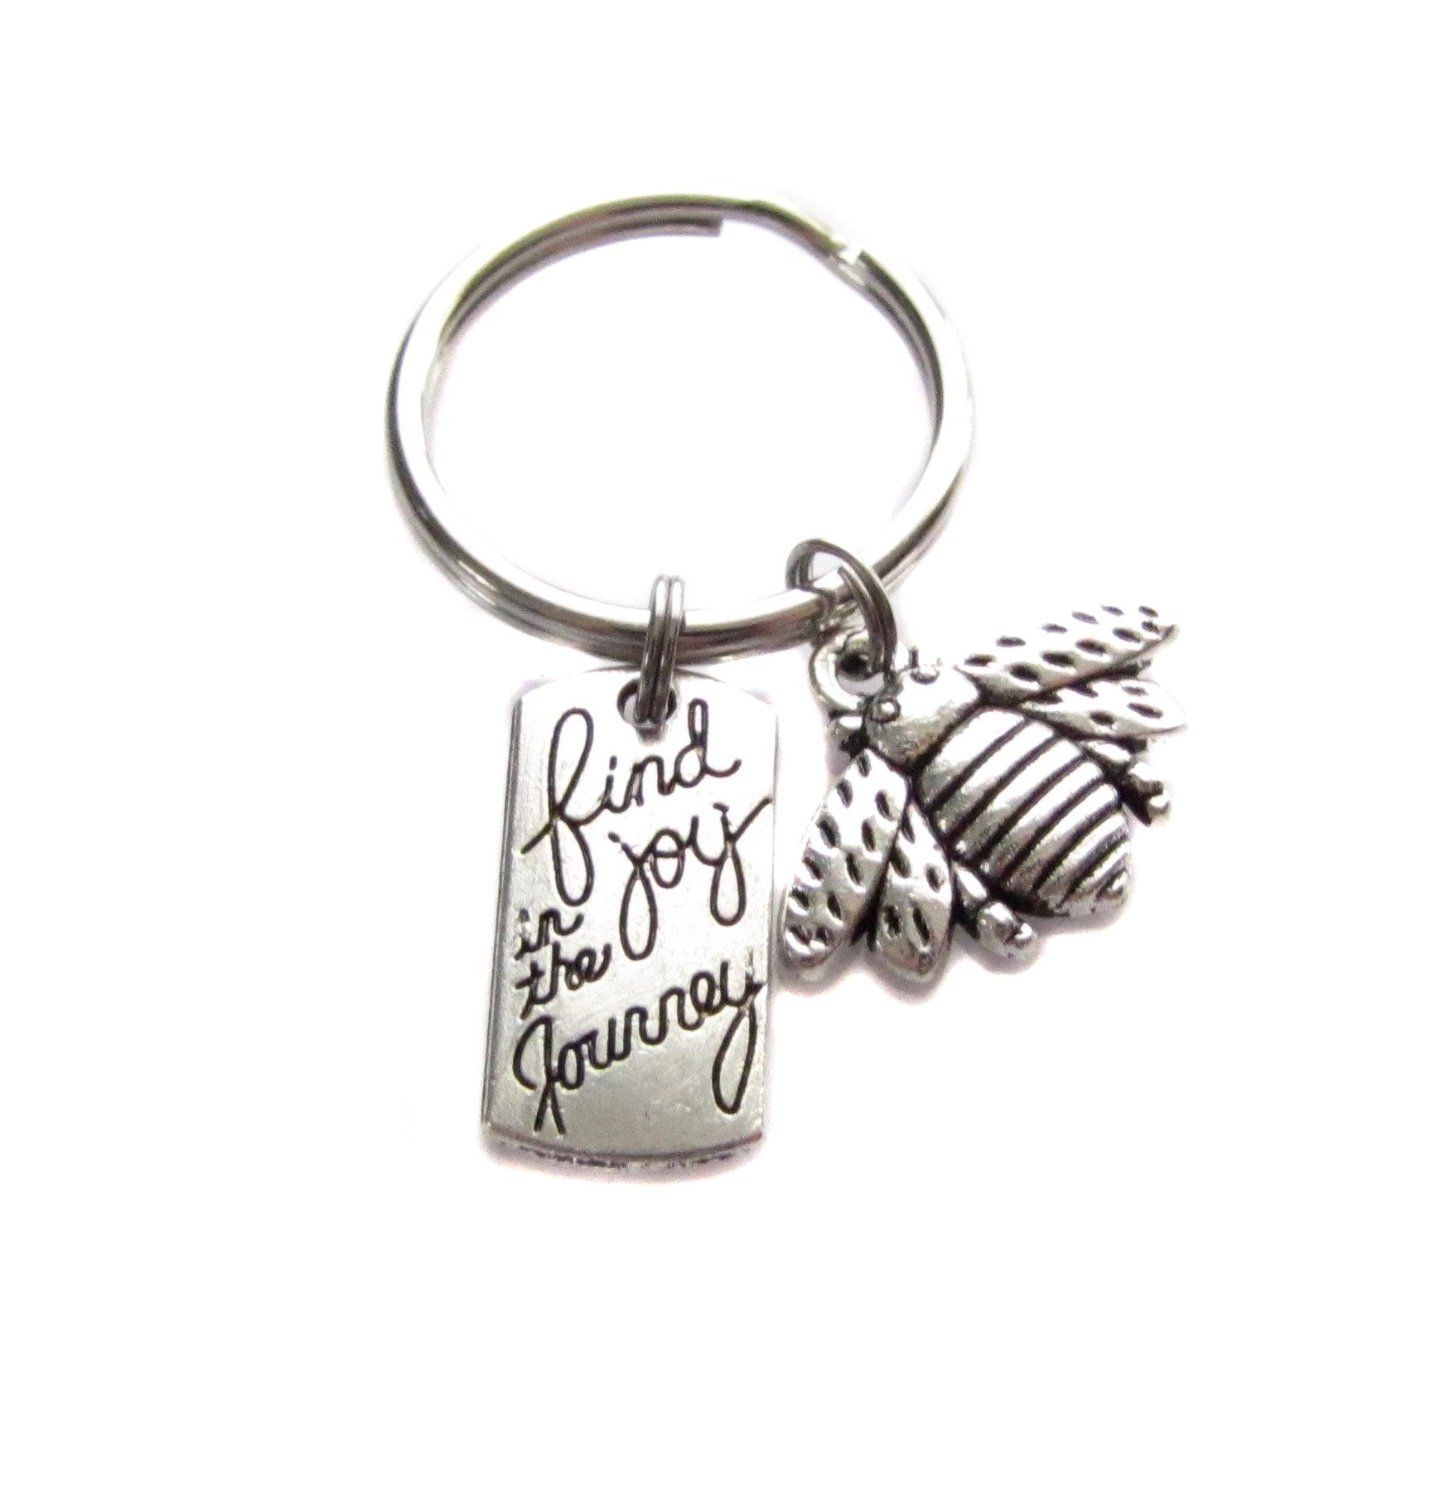 "Amazon.com : ""Find Joy in The Journey"" With Bee Charm Keychain, Bag Charm, Inspirational Graduation Gift : Everything Else"